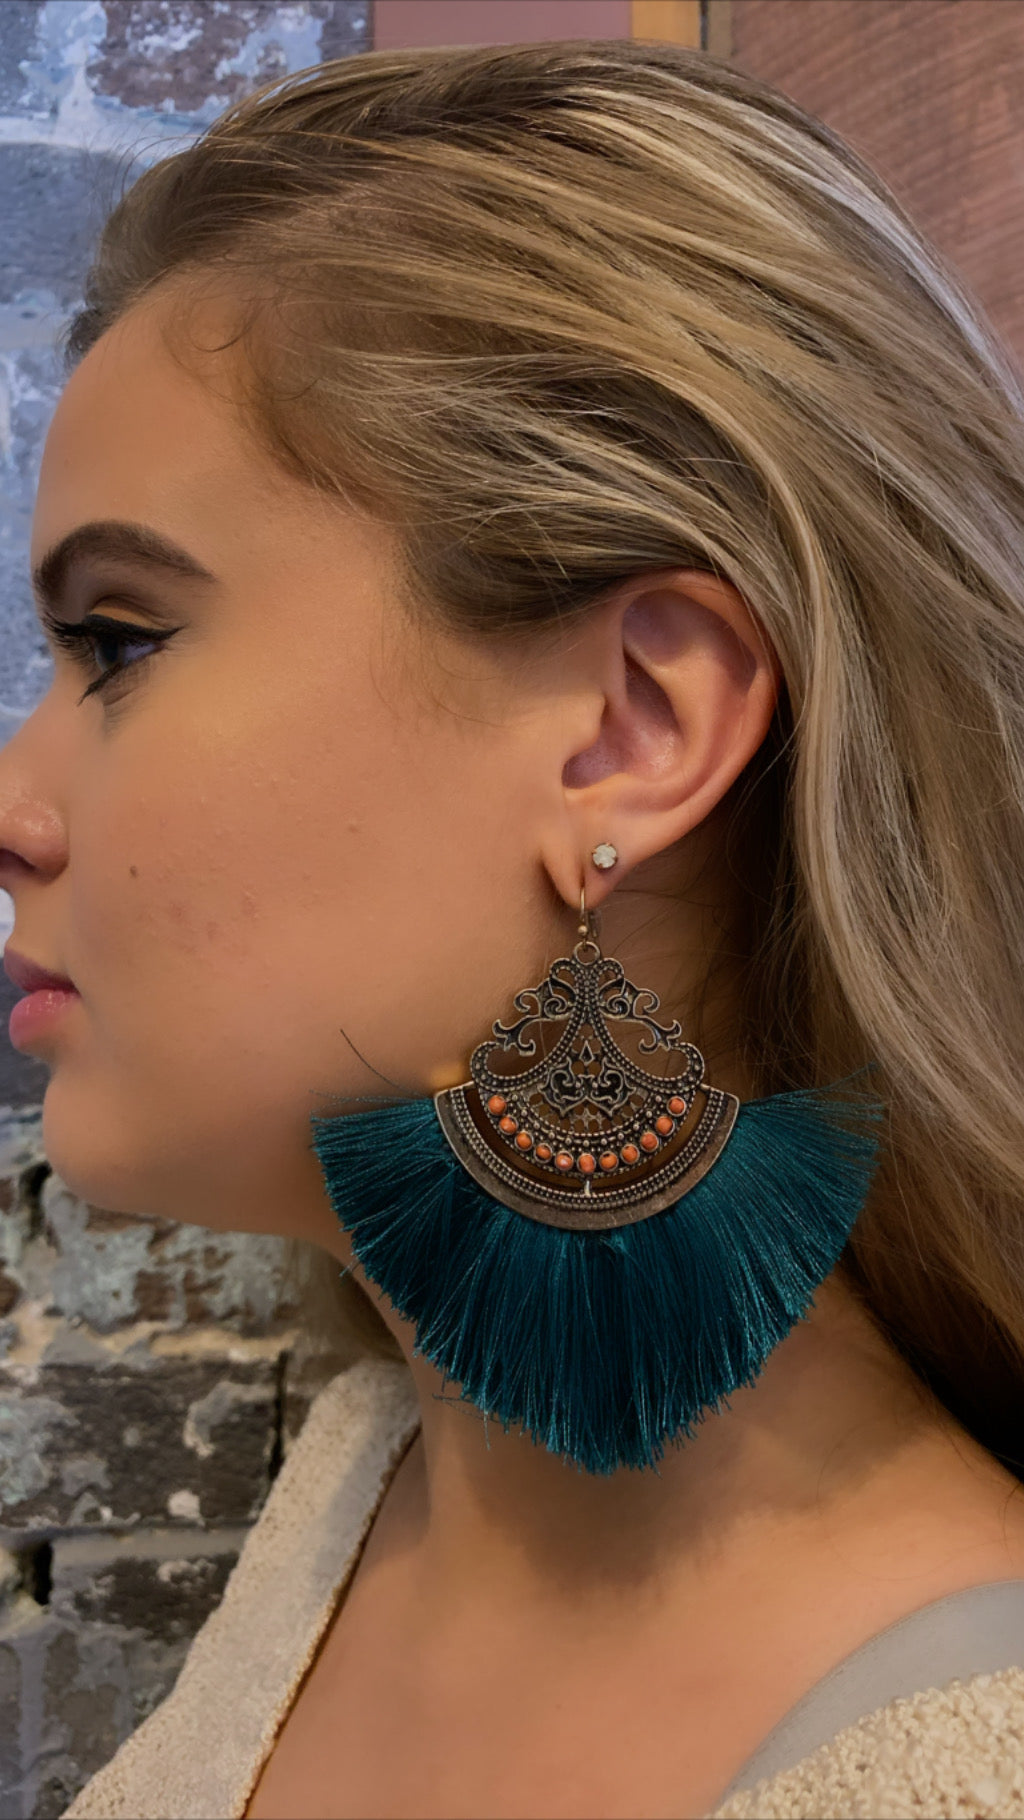 Influencer Earrings